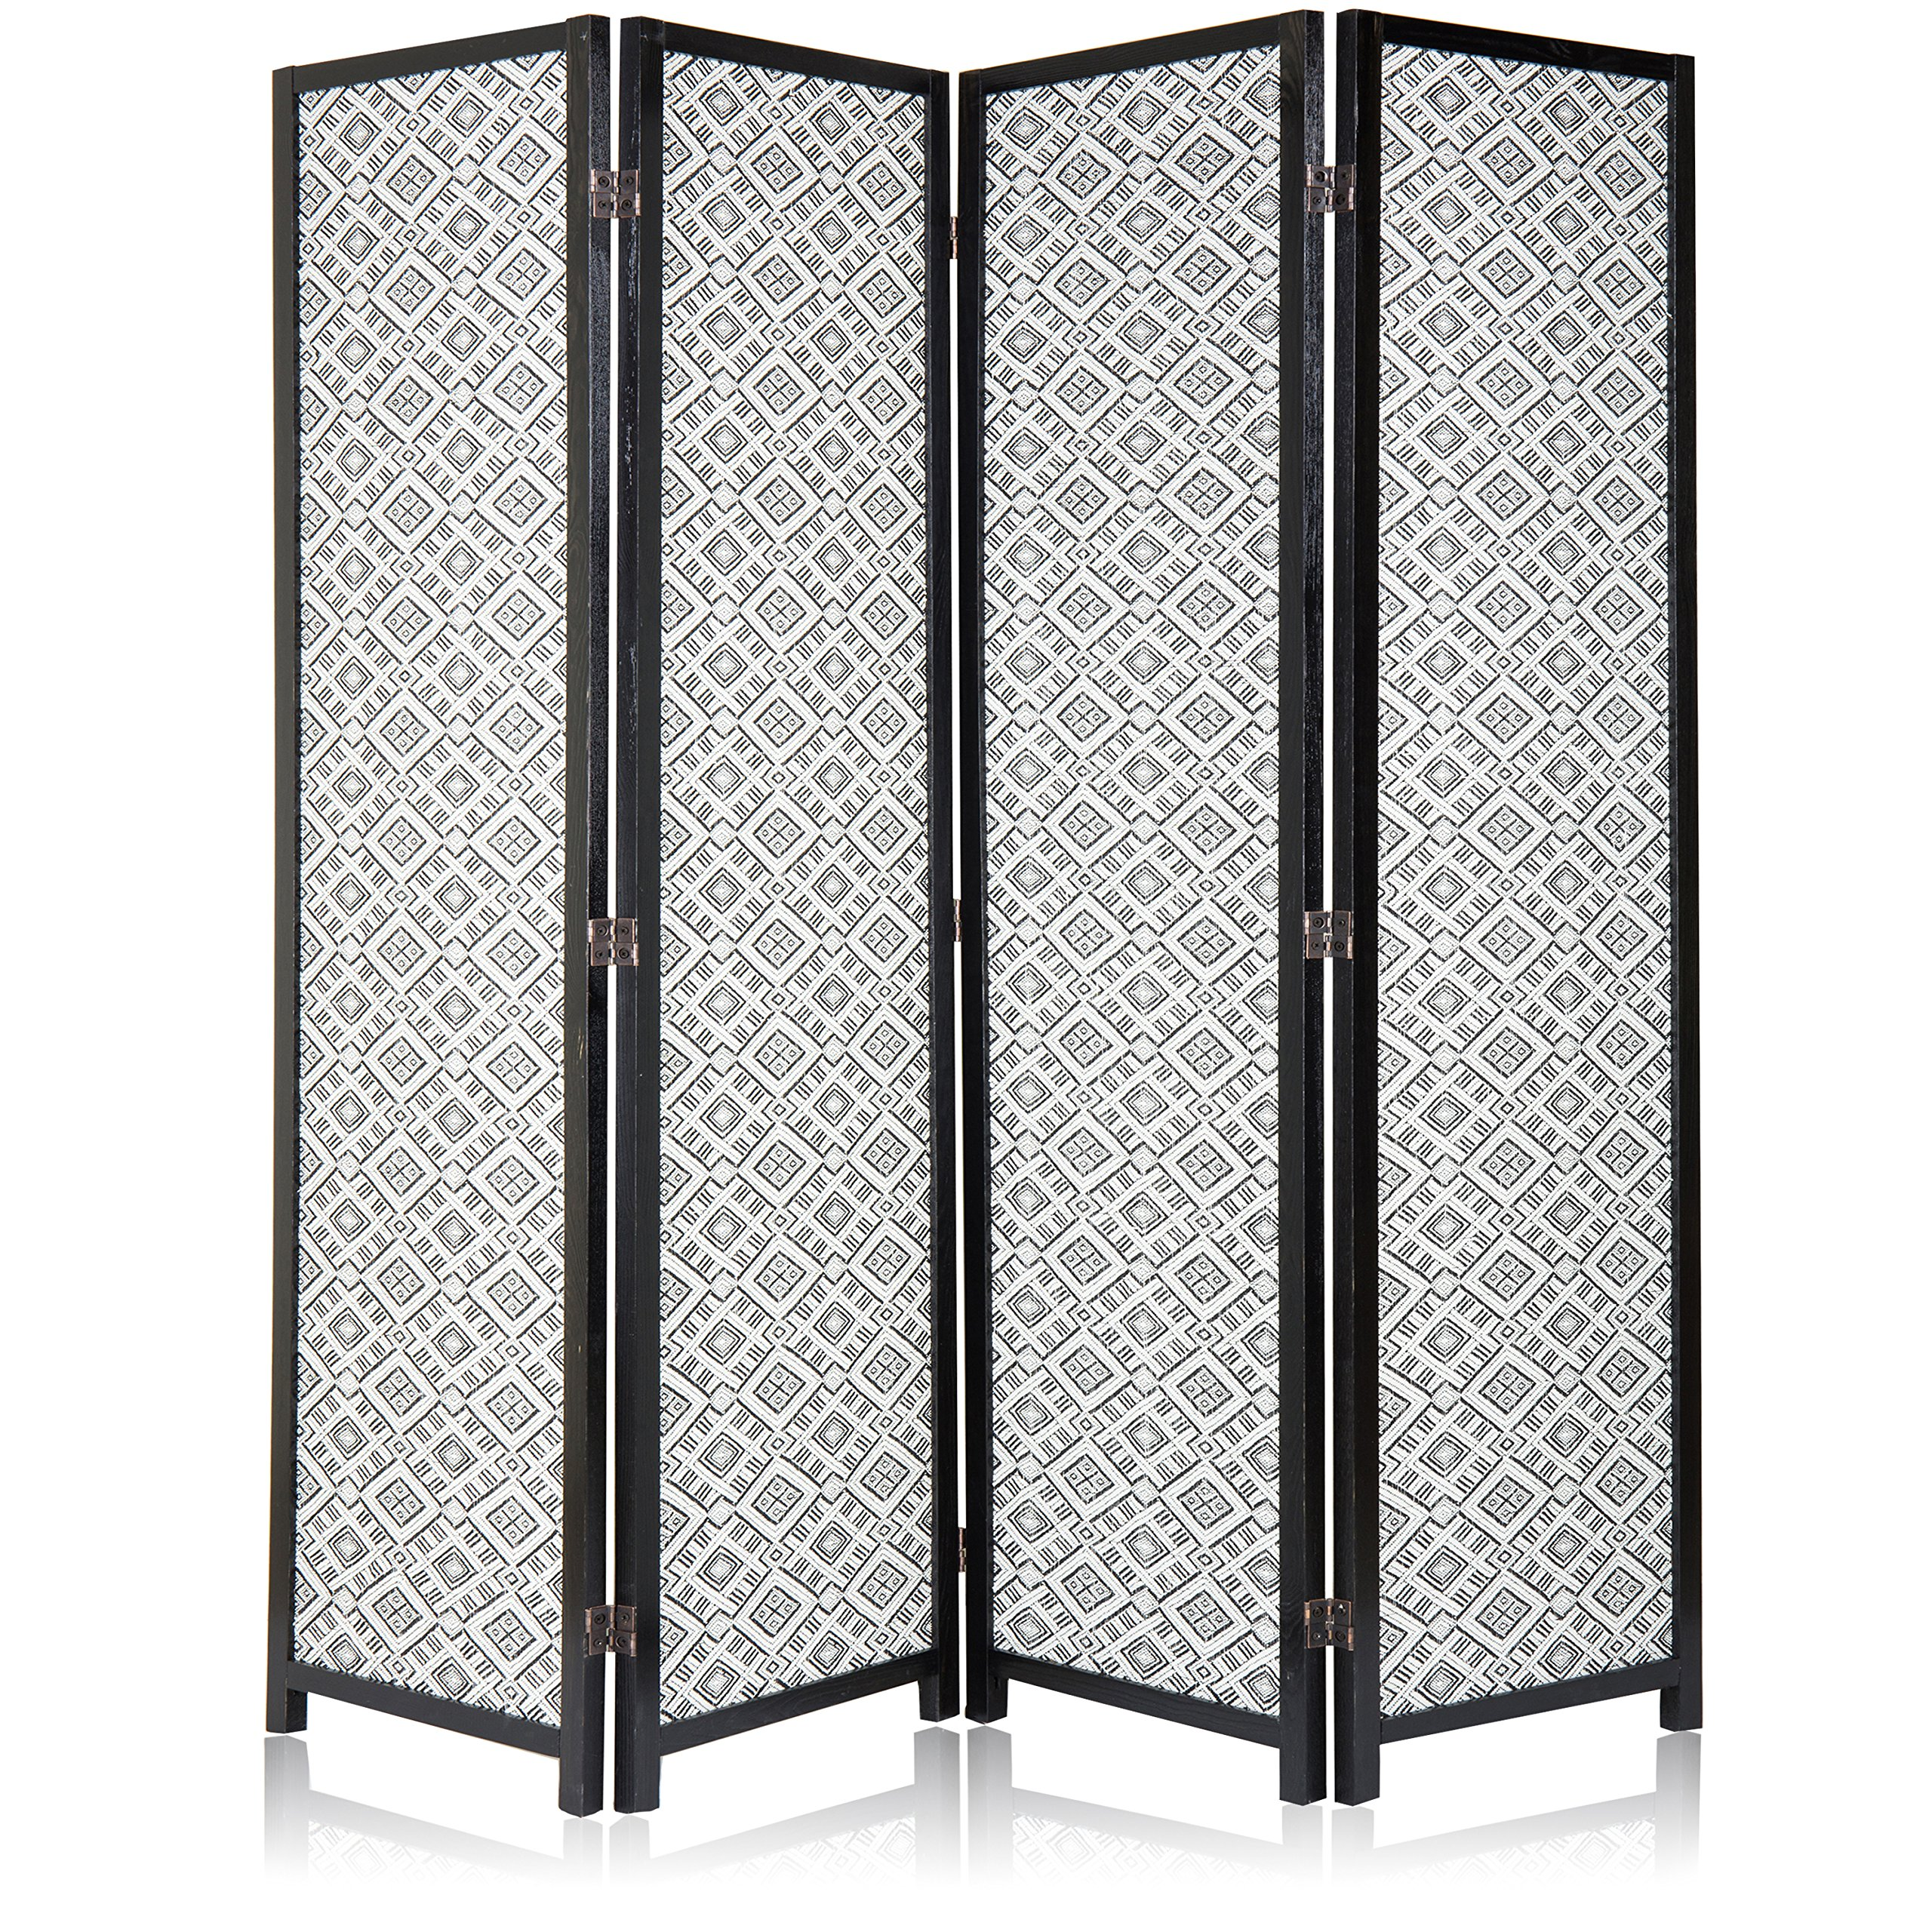 MyGift Moroccan-Style Woven Pattern 4-Panel Wood Framed Room Divider with Dual-Action Hinges